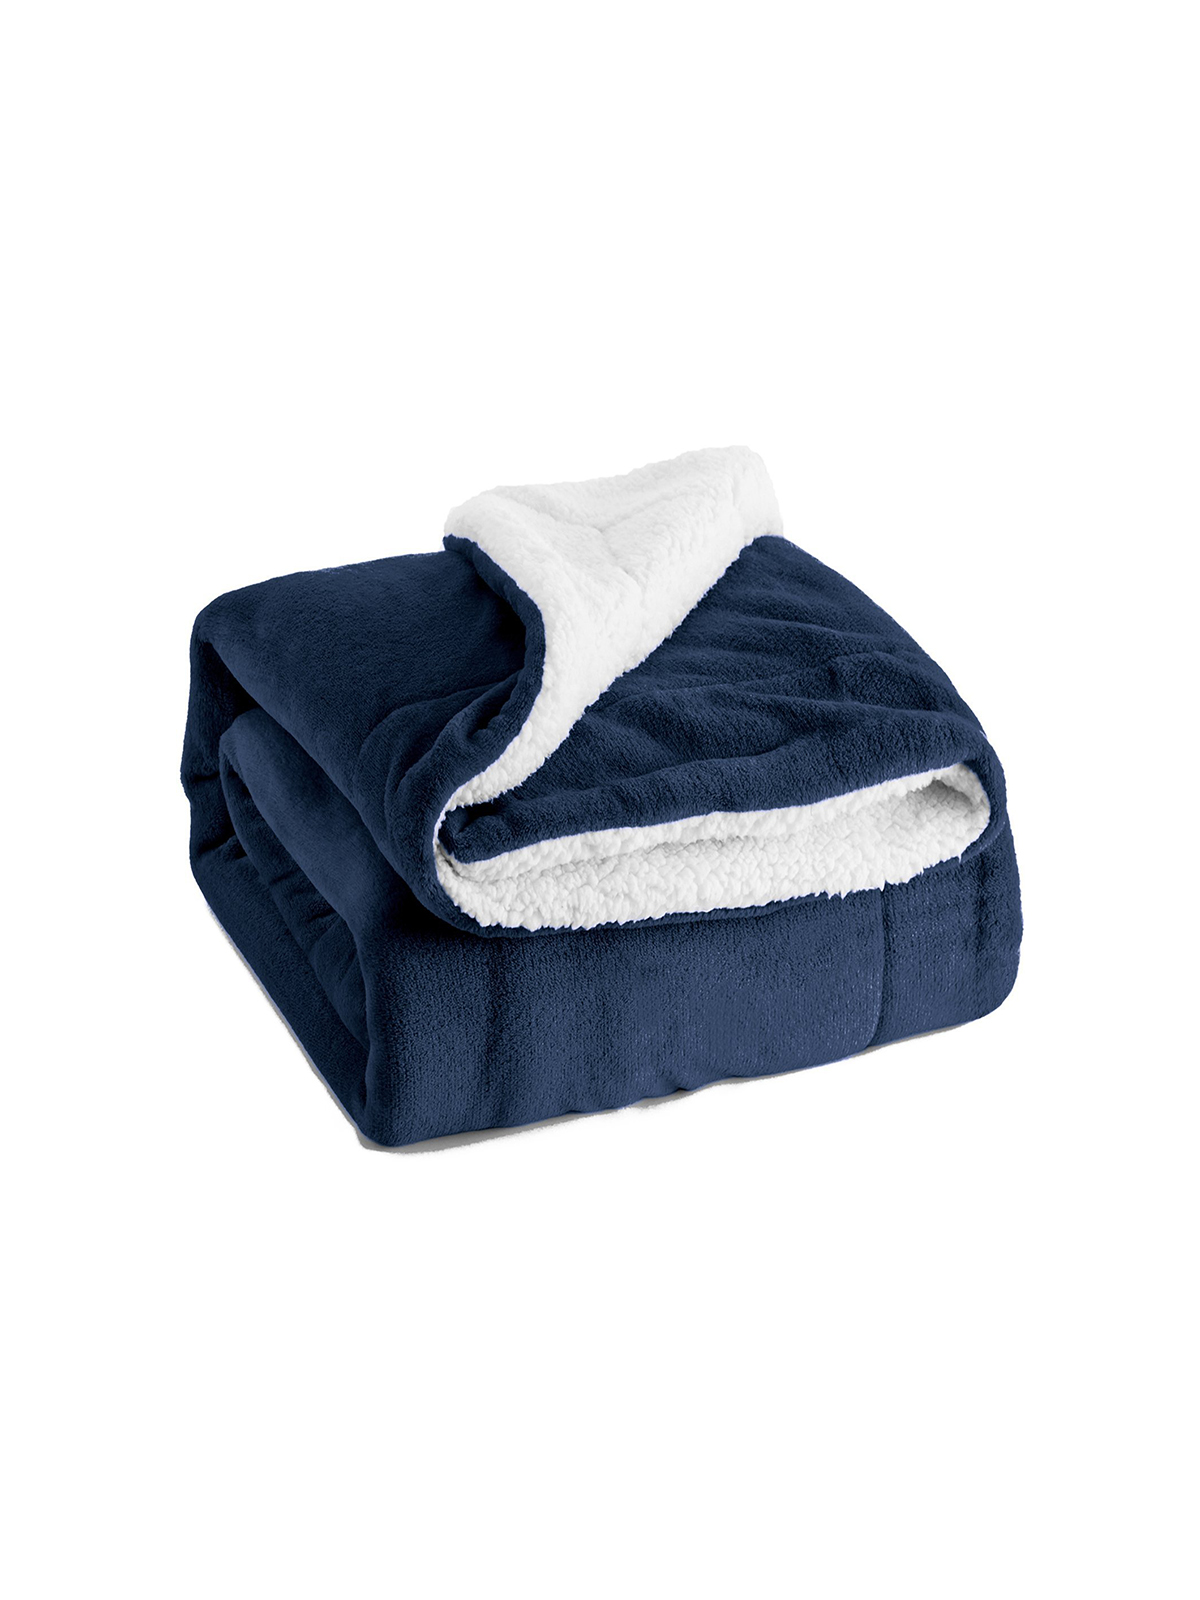 Sherpa-lined navy throw blanket